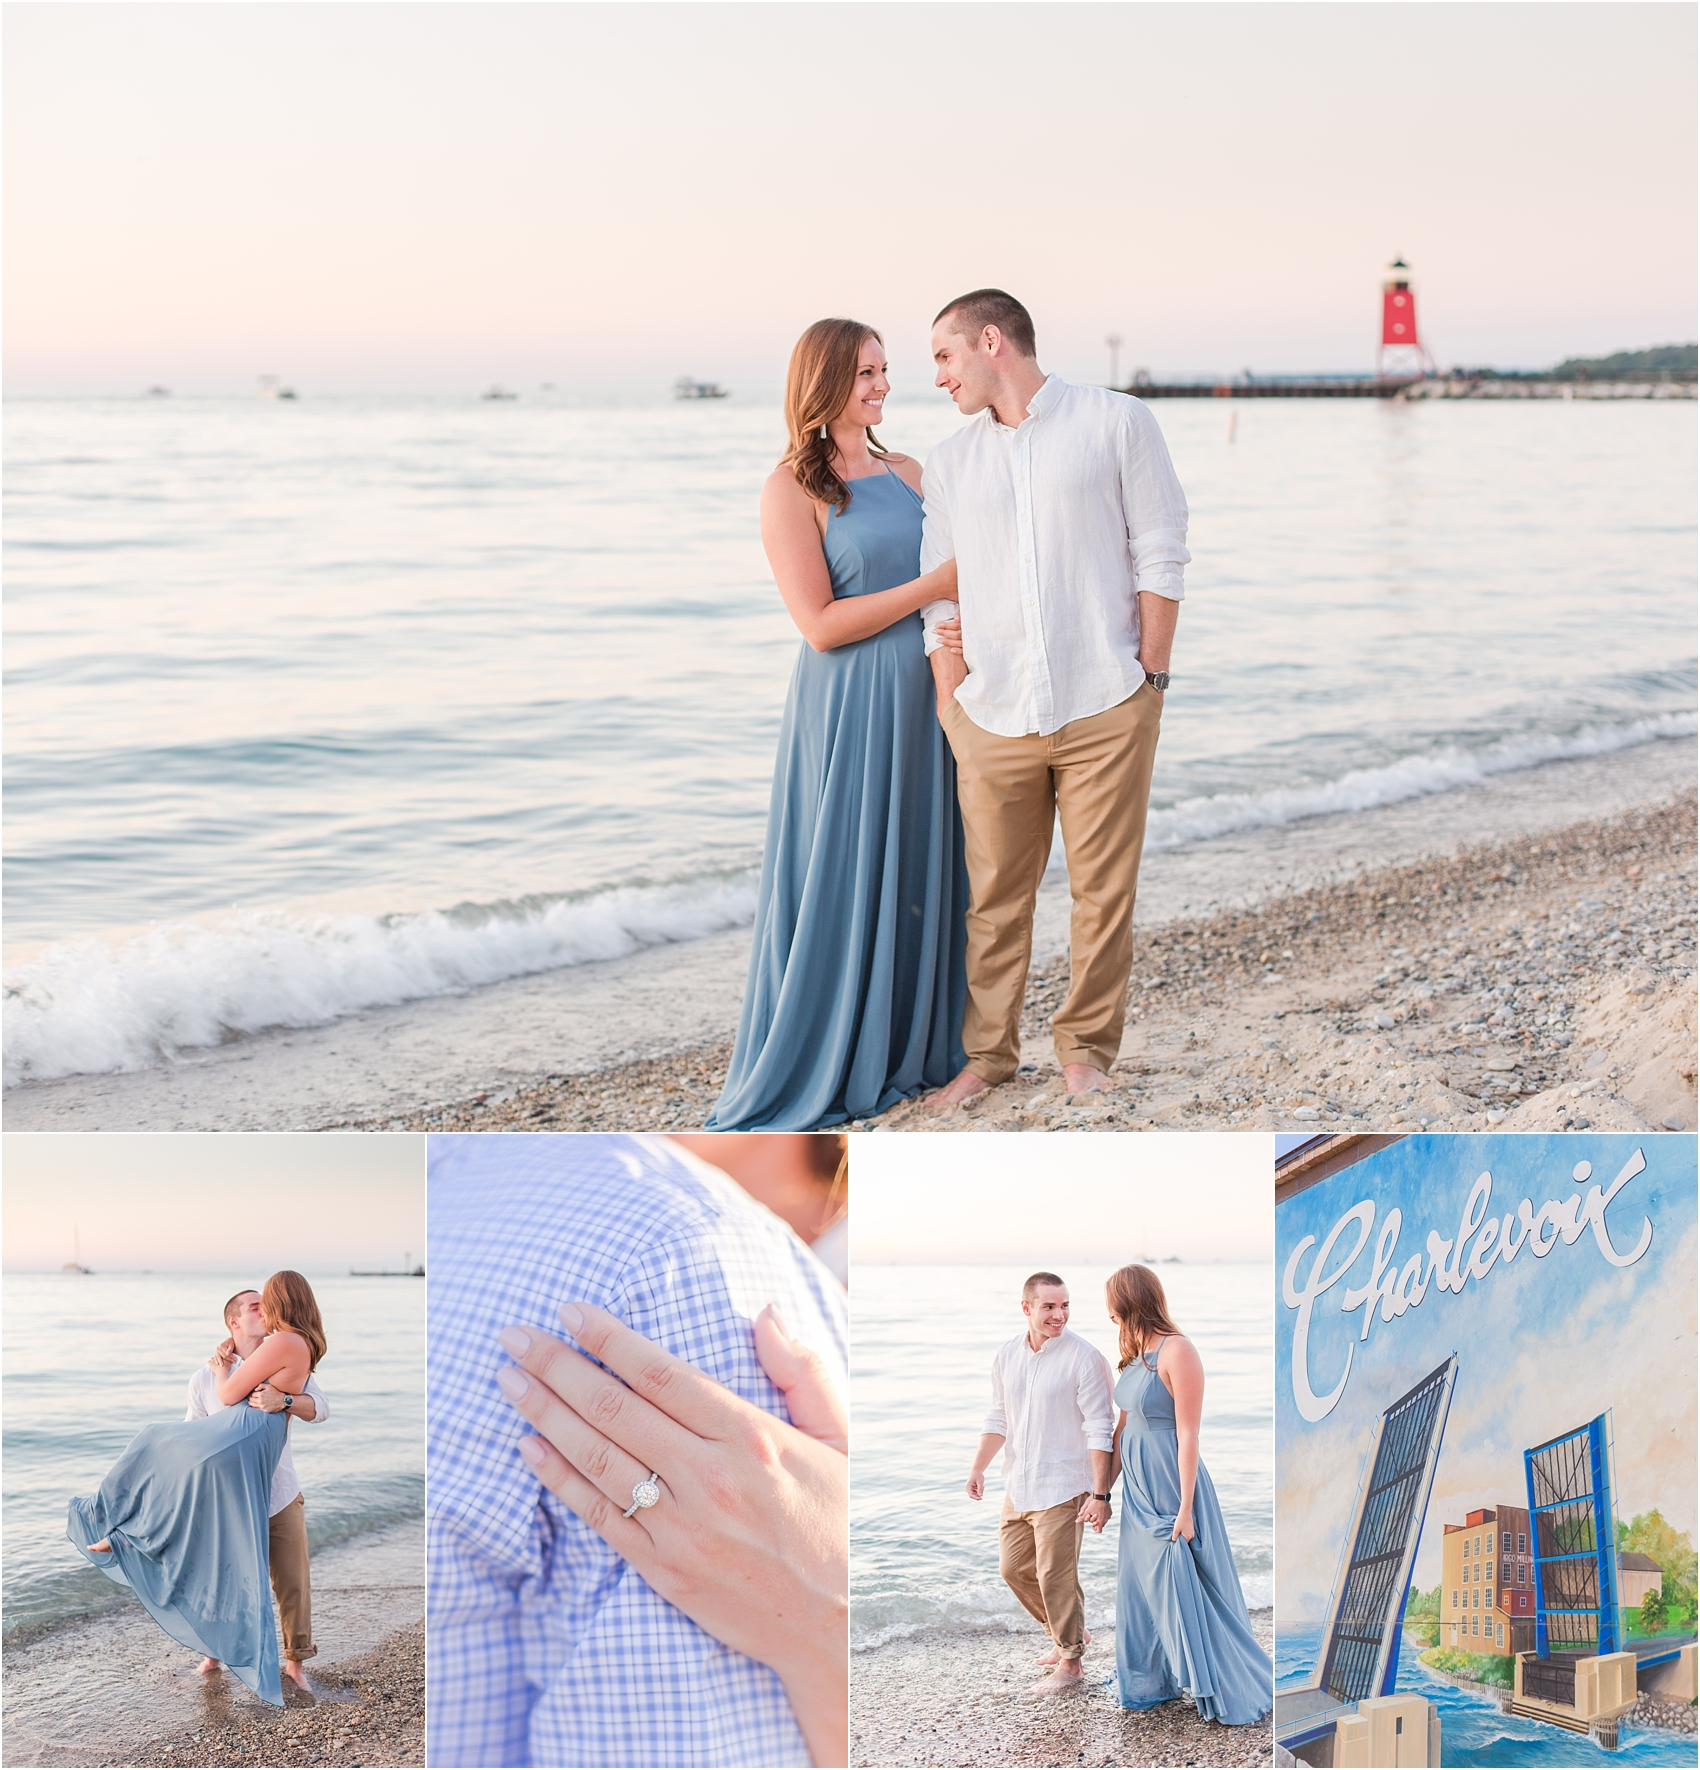 romantic-sunset-engagement-photos-at-michigan-beach-park-in-charlevoix-mi-by-courtney-carolyn-photography_0018.jpg